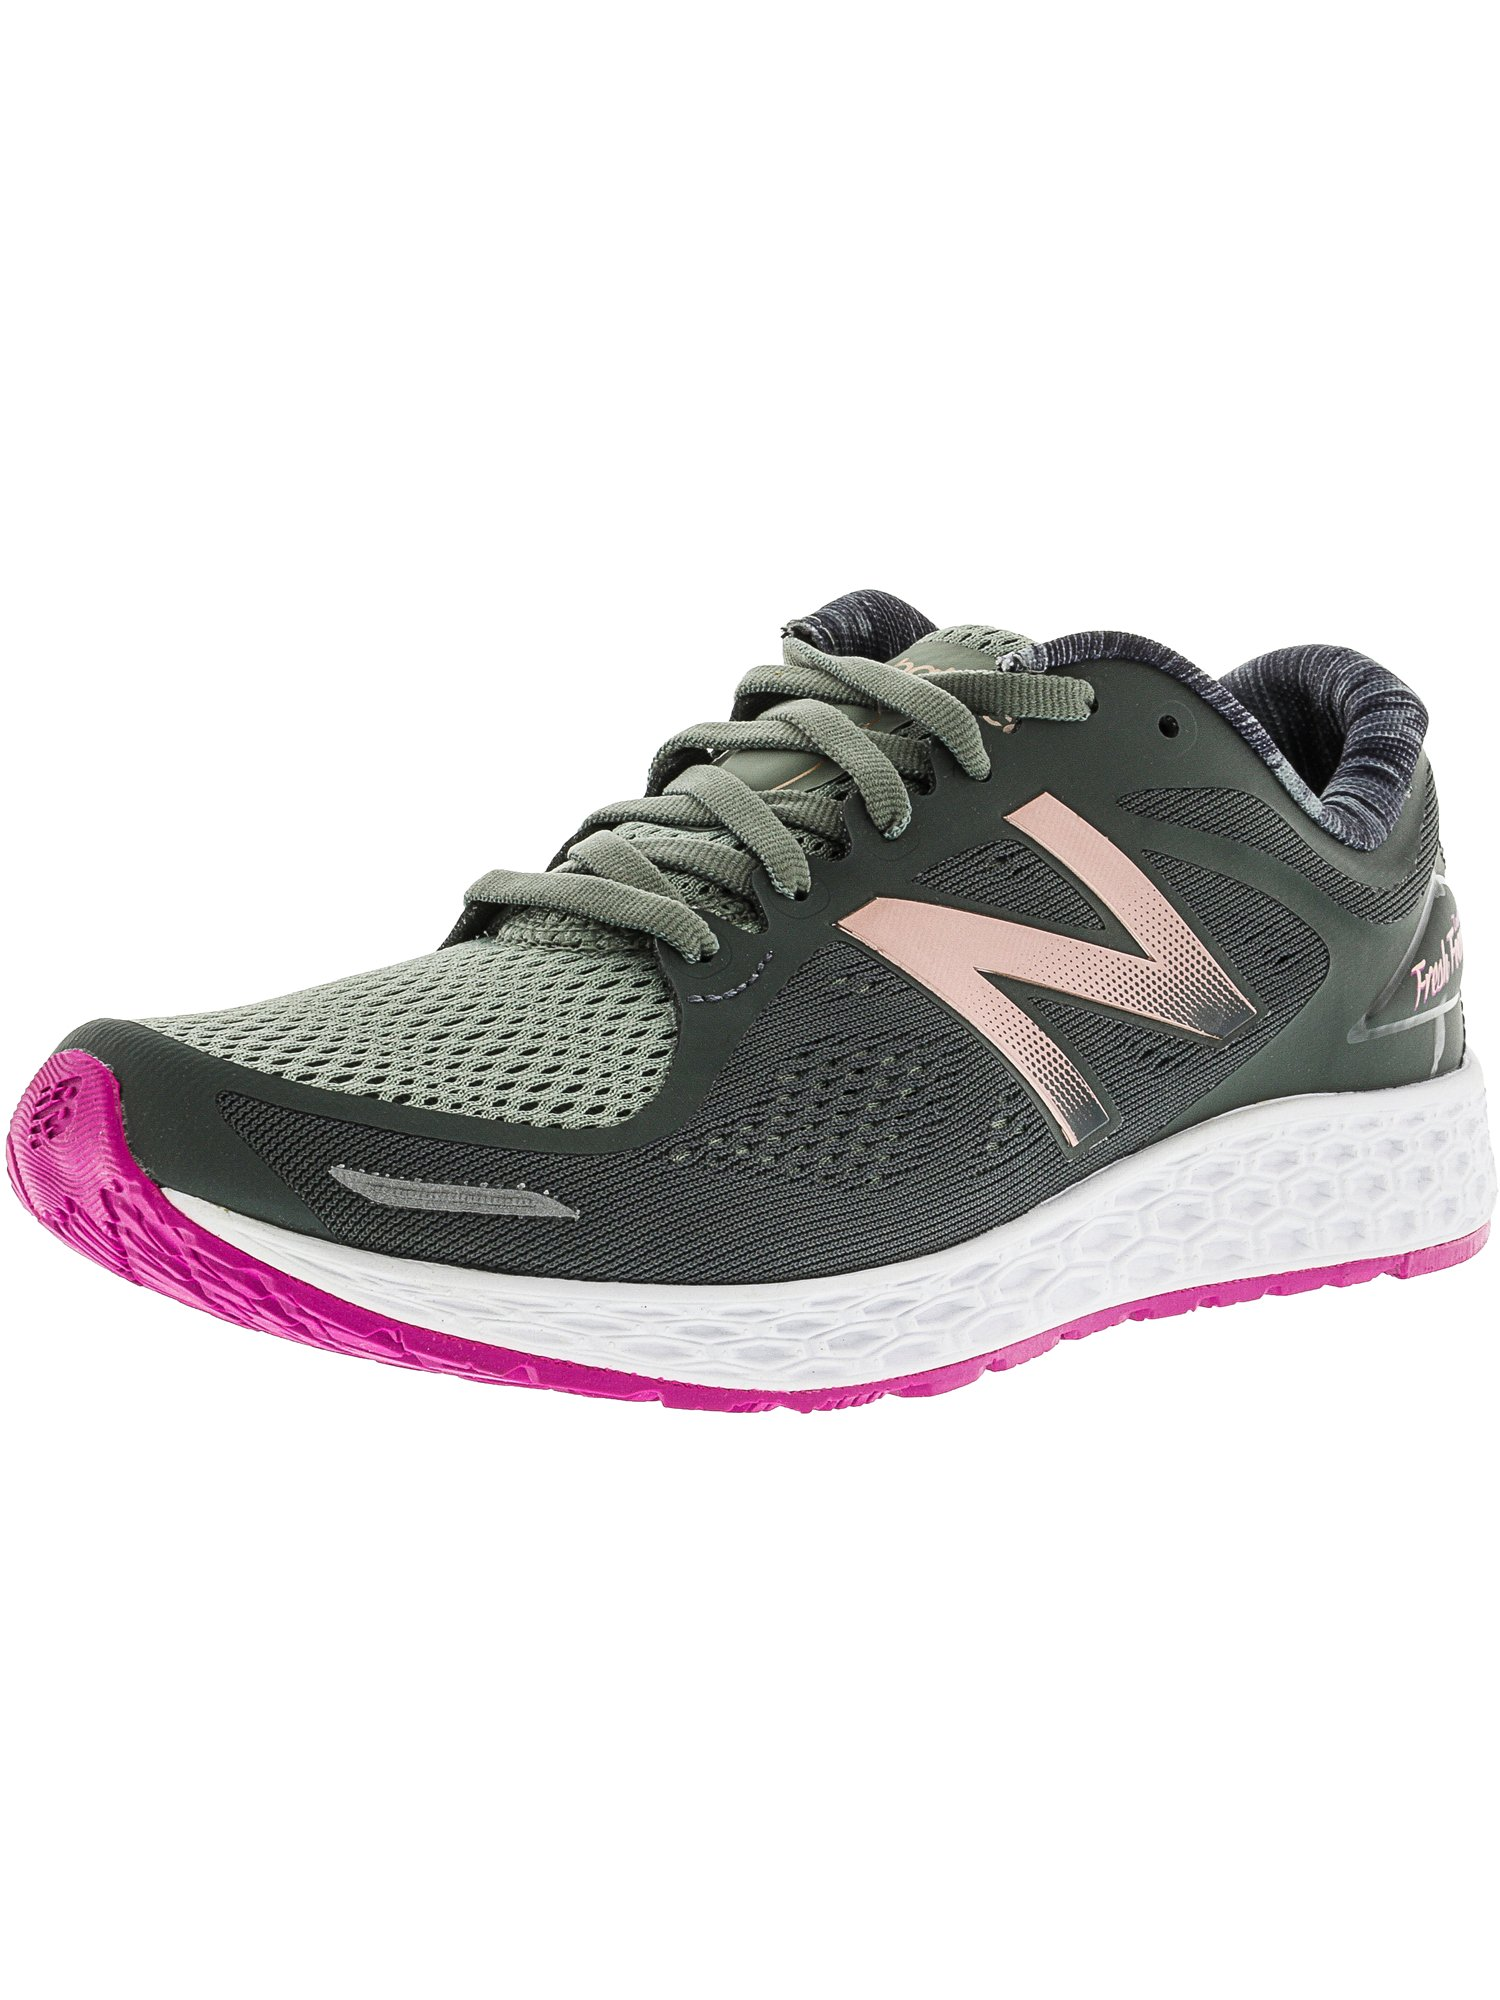 New Balance Women's Wzant Hs2 Ankle-High Mesh Running Shoe 8M by New Balance